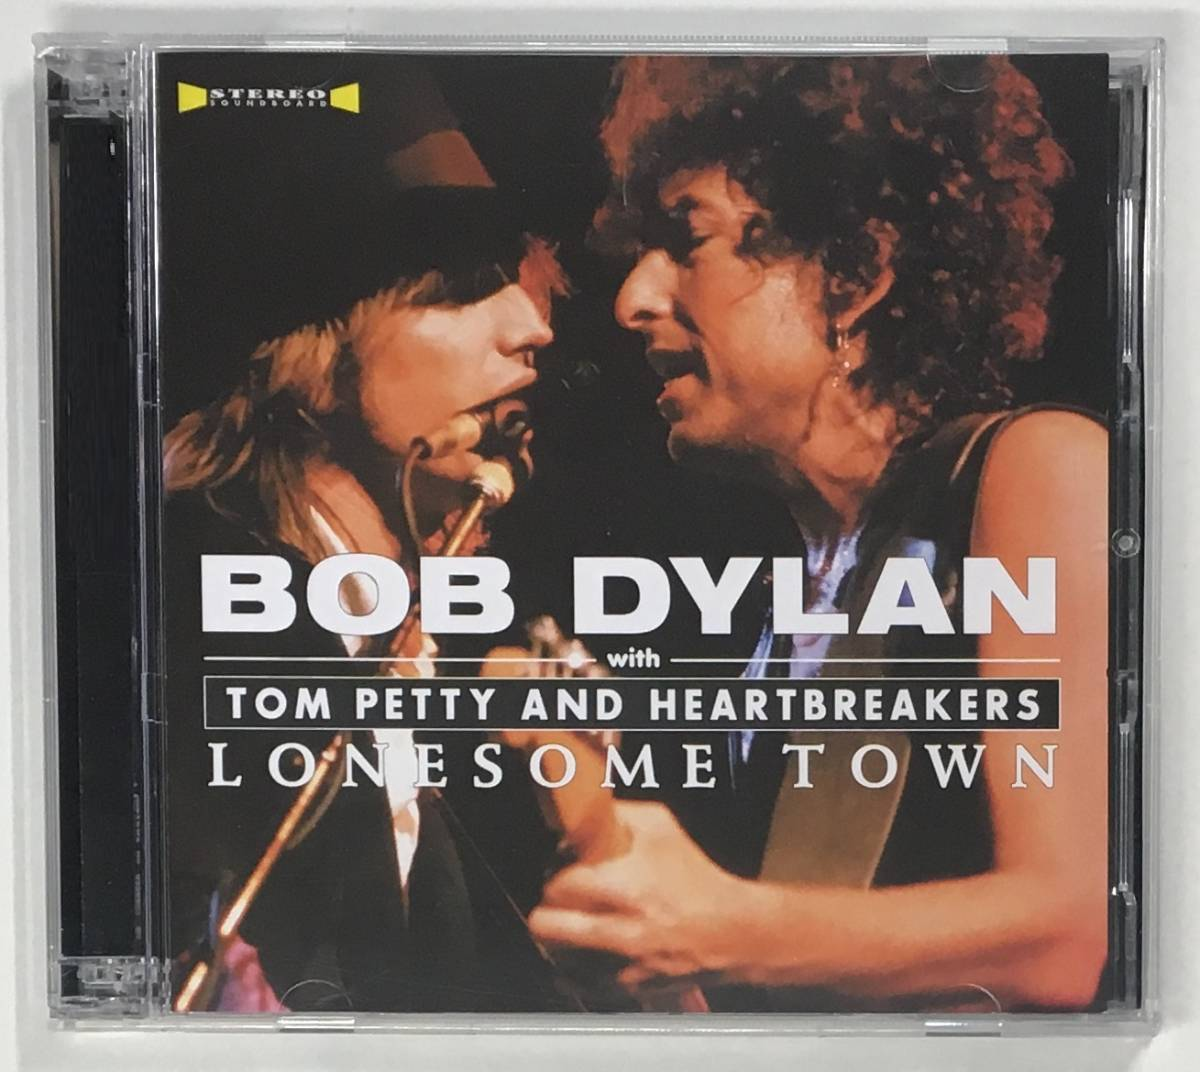 M3084◆BOB DYLAN with TOM PETTY & THE HEARTBREAKERS◆LONESOME TOWN 1986(2CD)